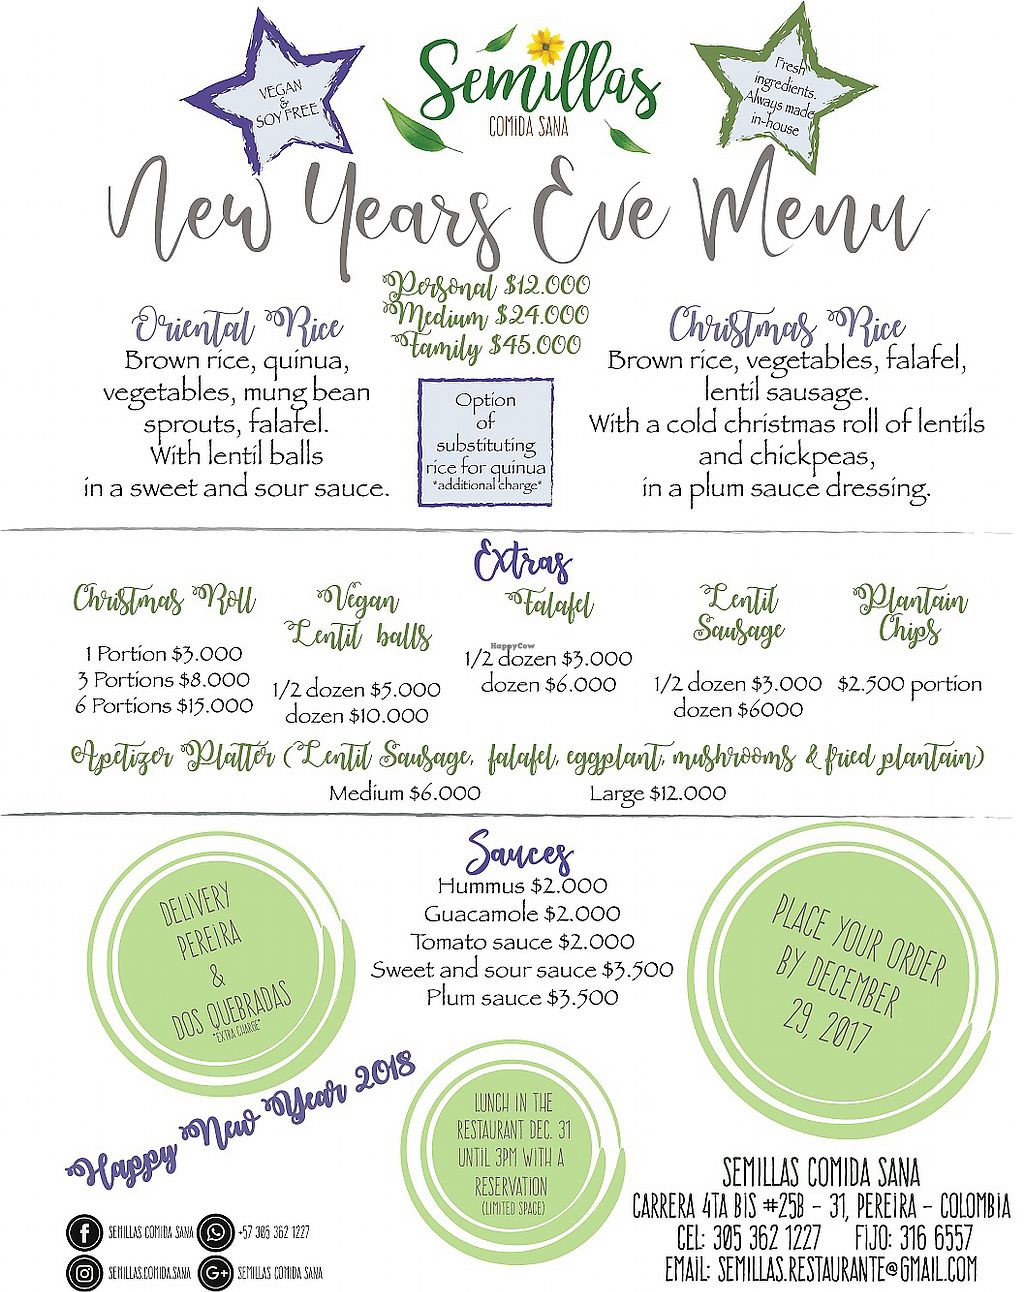 """Photo of Semillas Comida Sana  by <a href=""""/members/profile/weganmama"""">weganmama</a> <br/>New Year's Eve take out menu  <br/> December 28, 2017  - <a href='/contact/abuse/image/87708/340178'>Report</a>"""